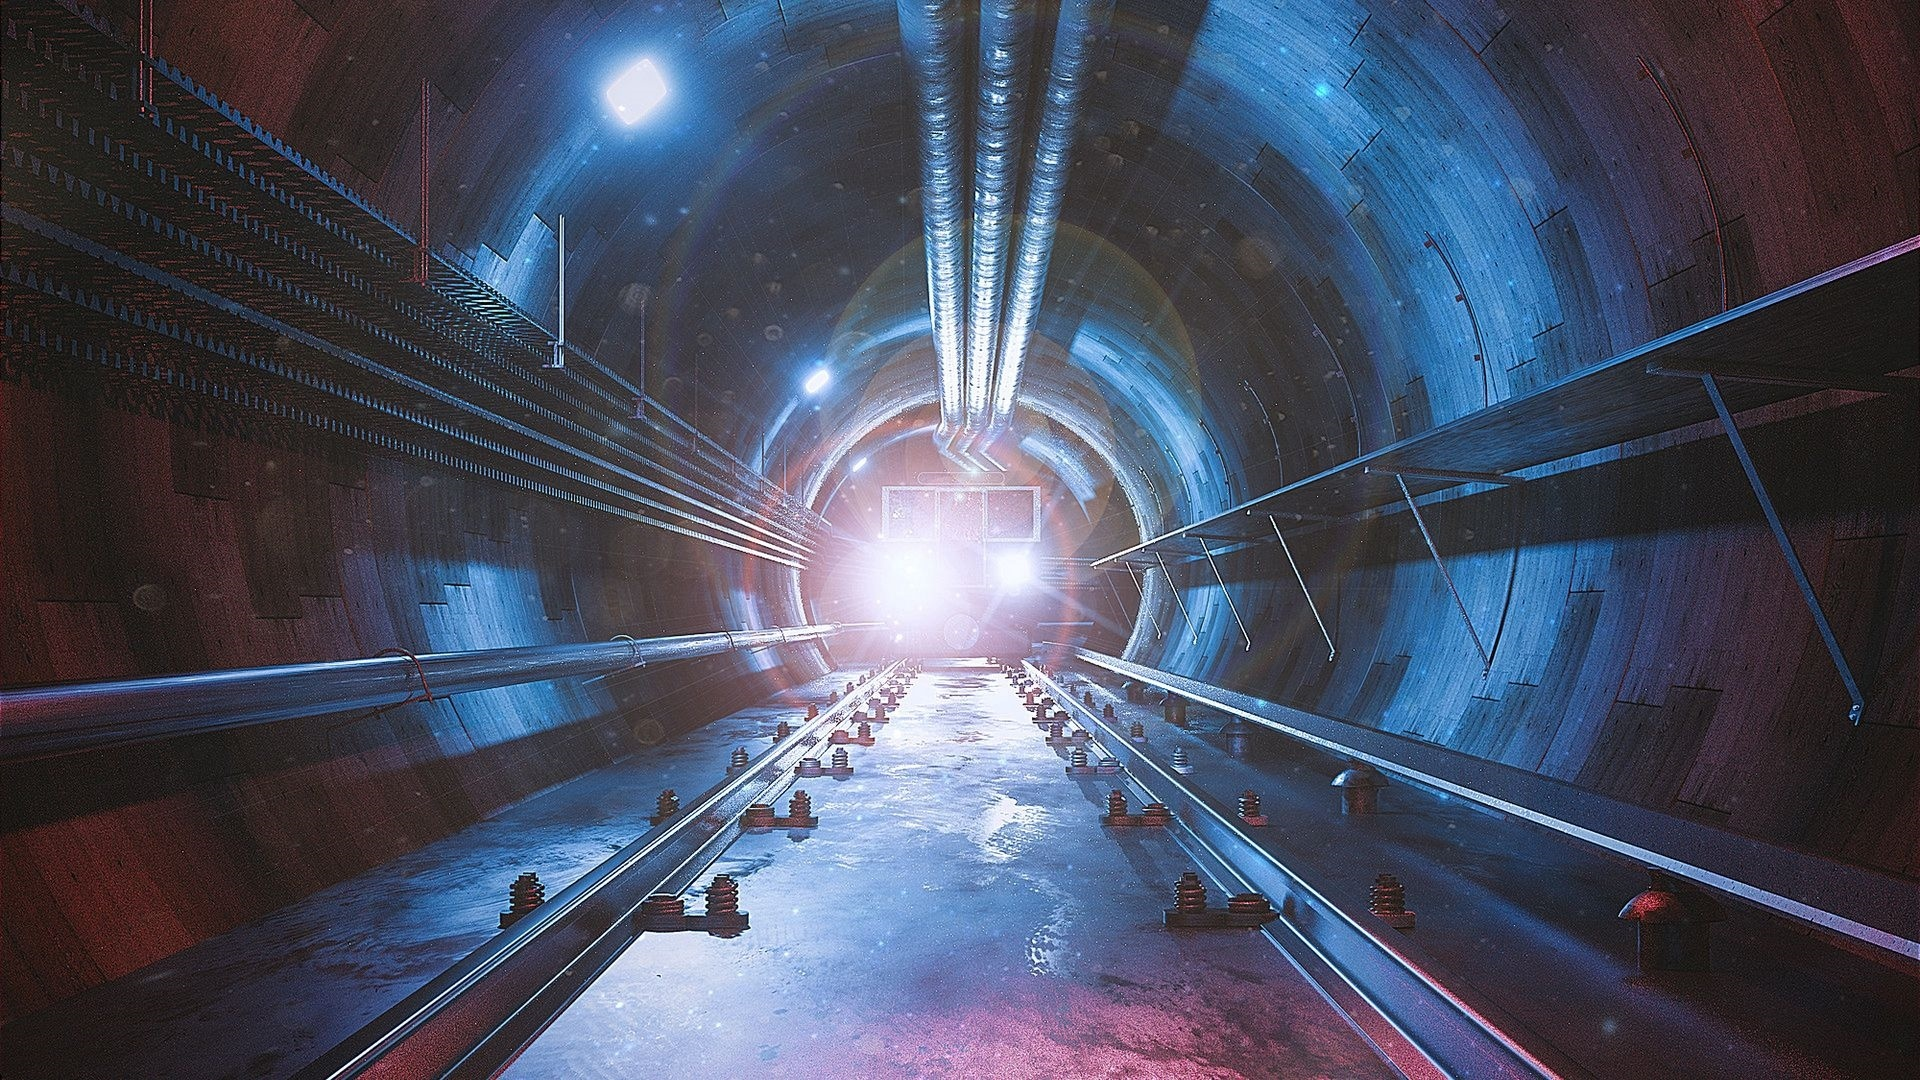 Space Tunnel Background